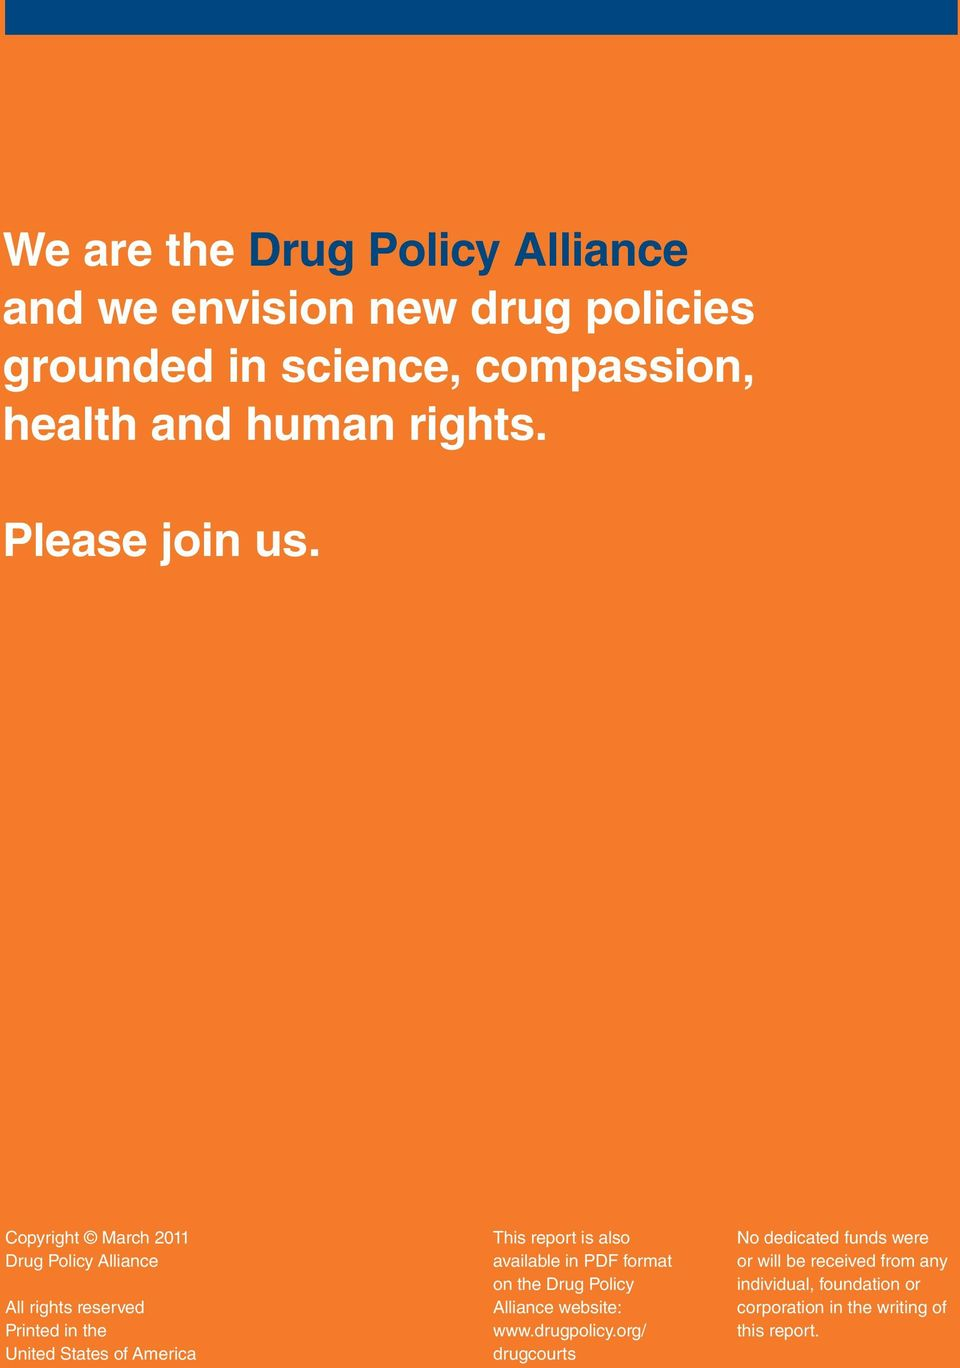 Copyright March 2011 Drug Policy Alliance All rights reserved Printed in the United States of America This report is